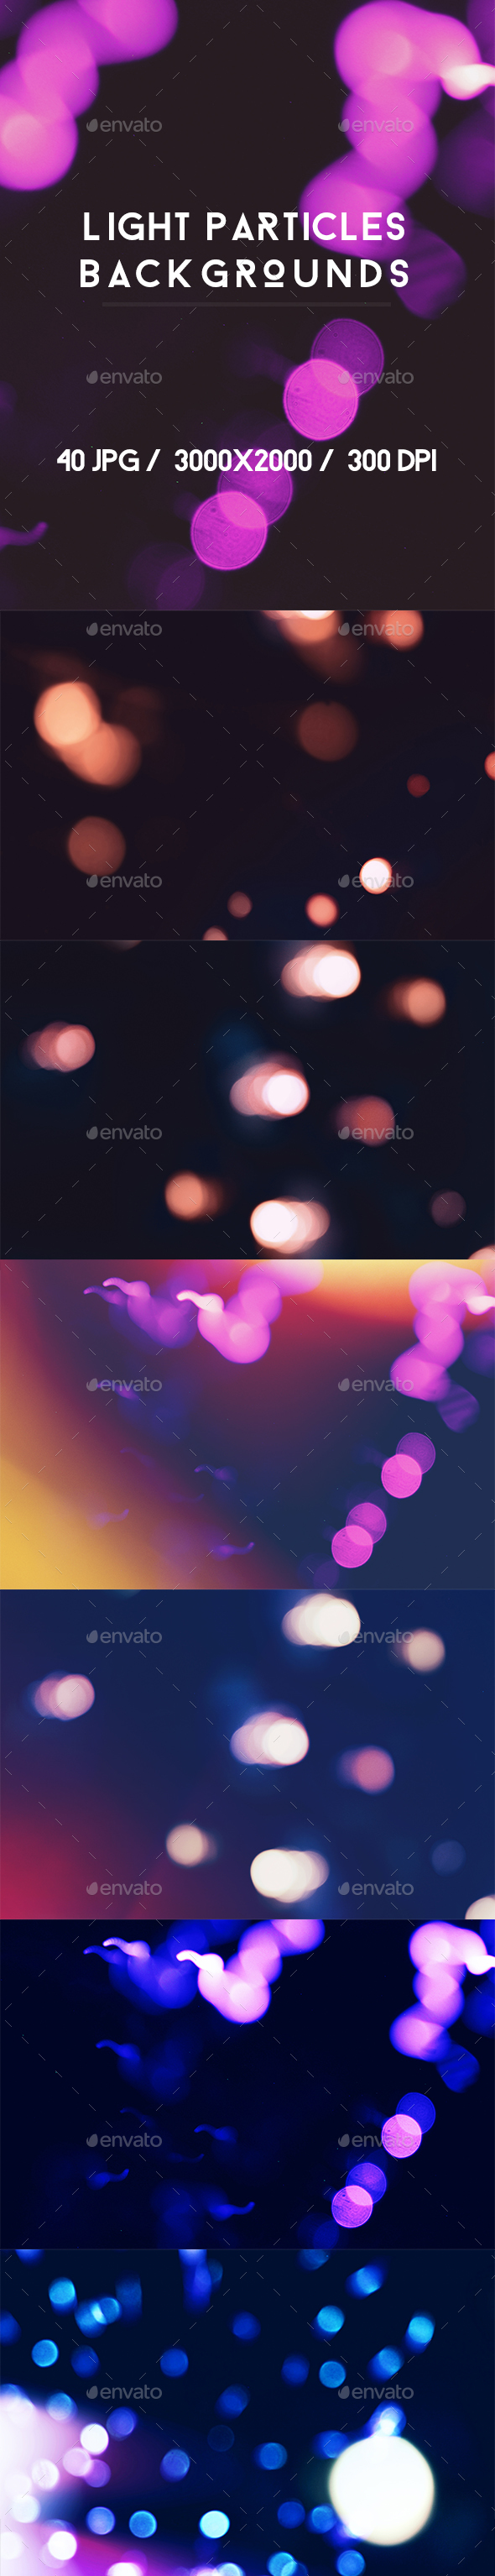 40 Light Particles Backgrounds - Abstract Backgrounds